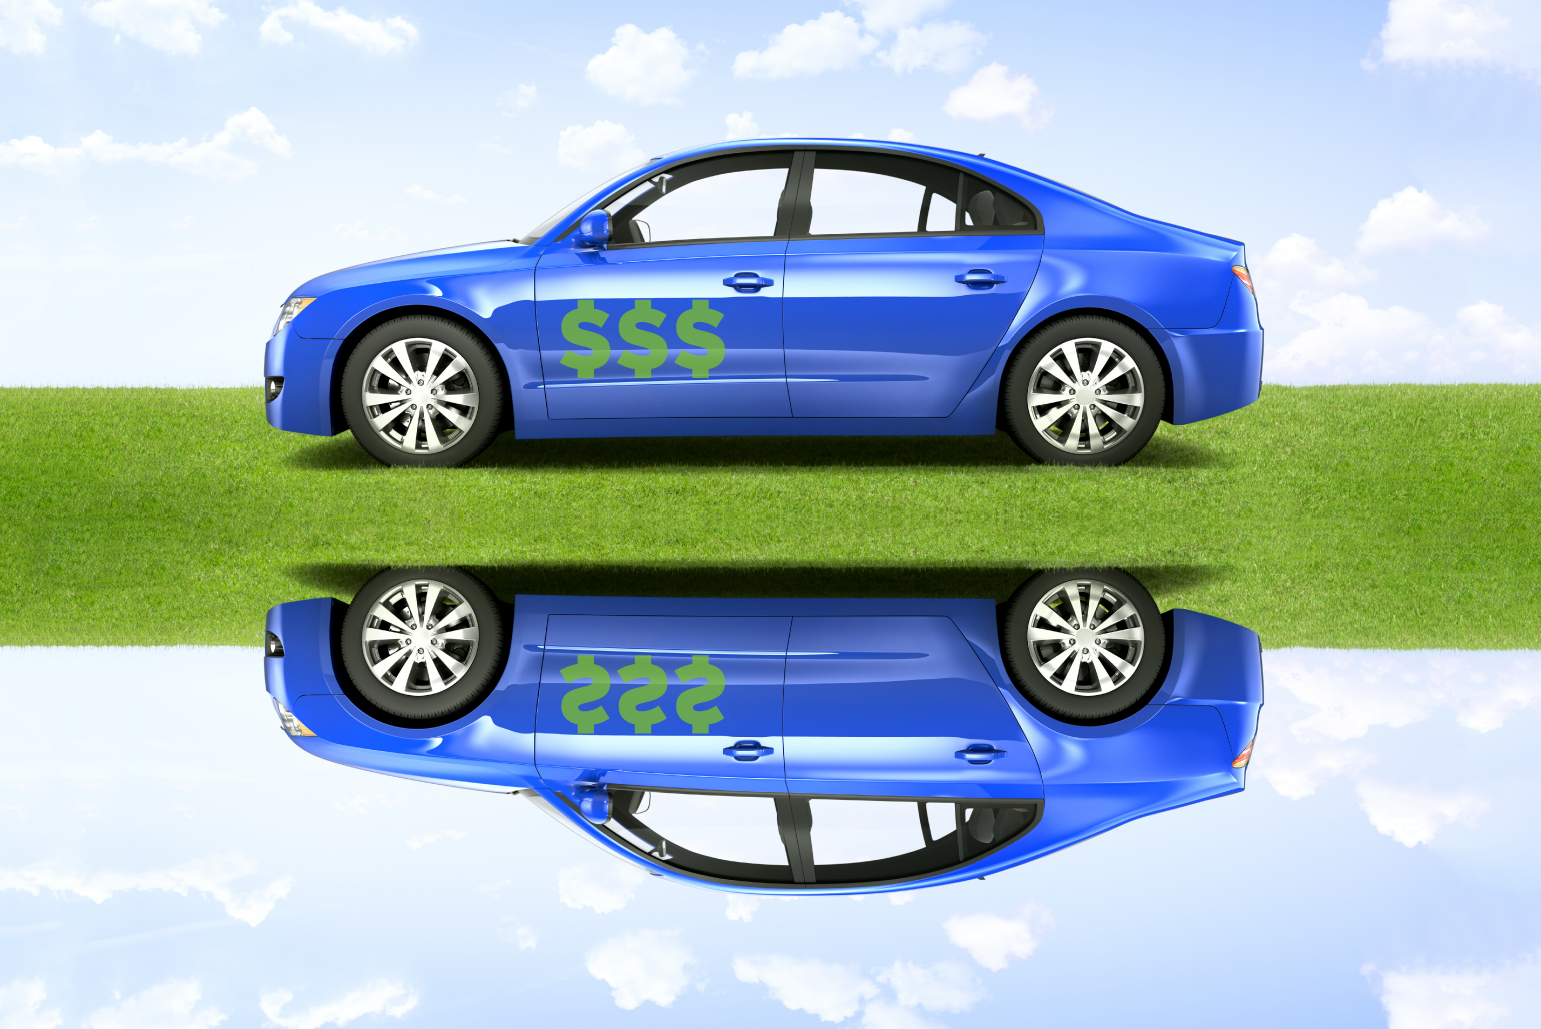 Vehicle with an upside-down car loan